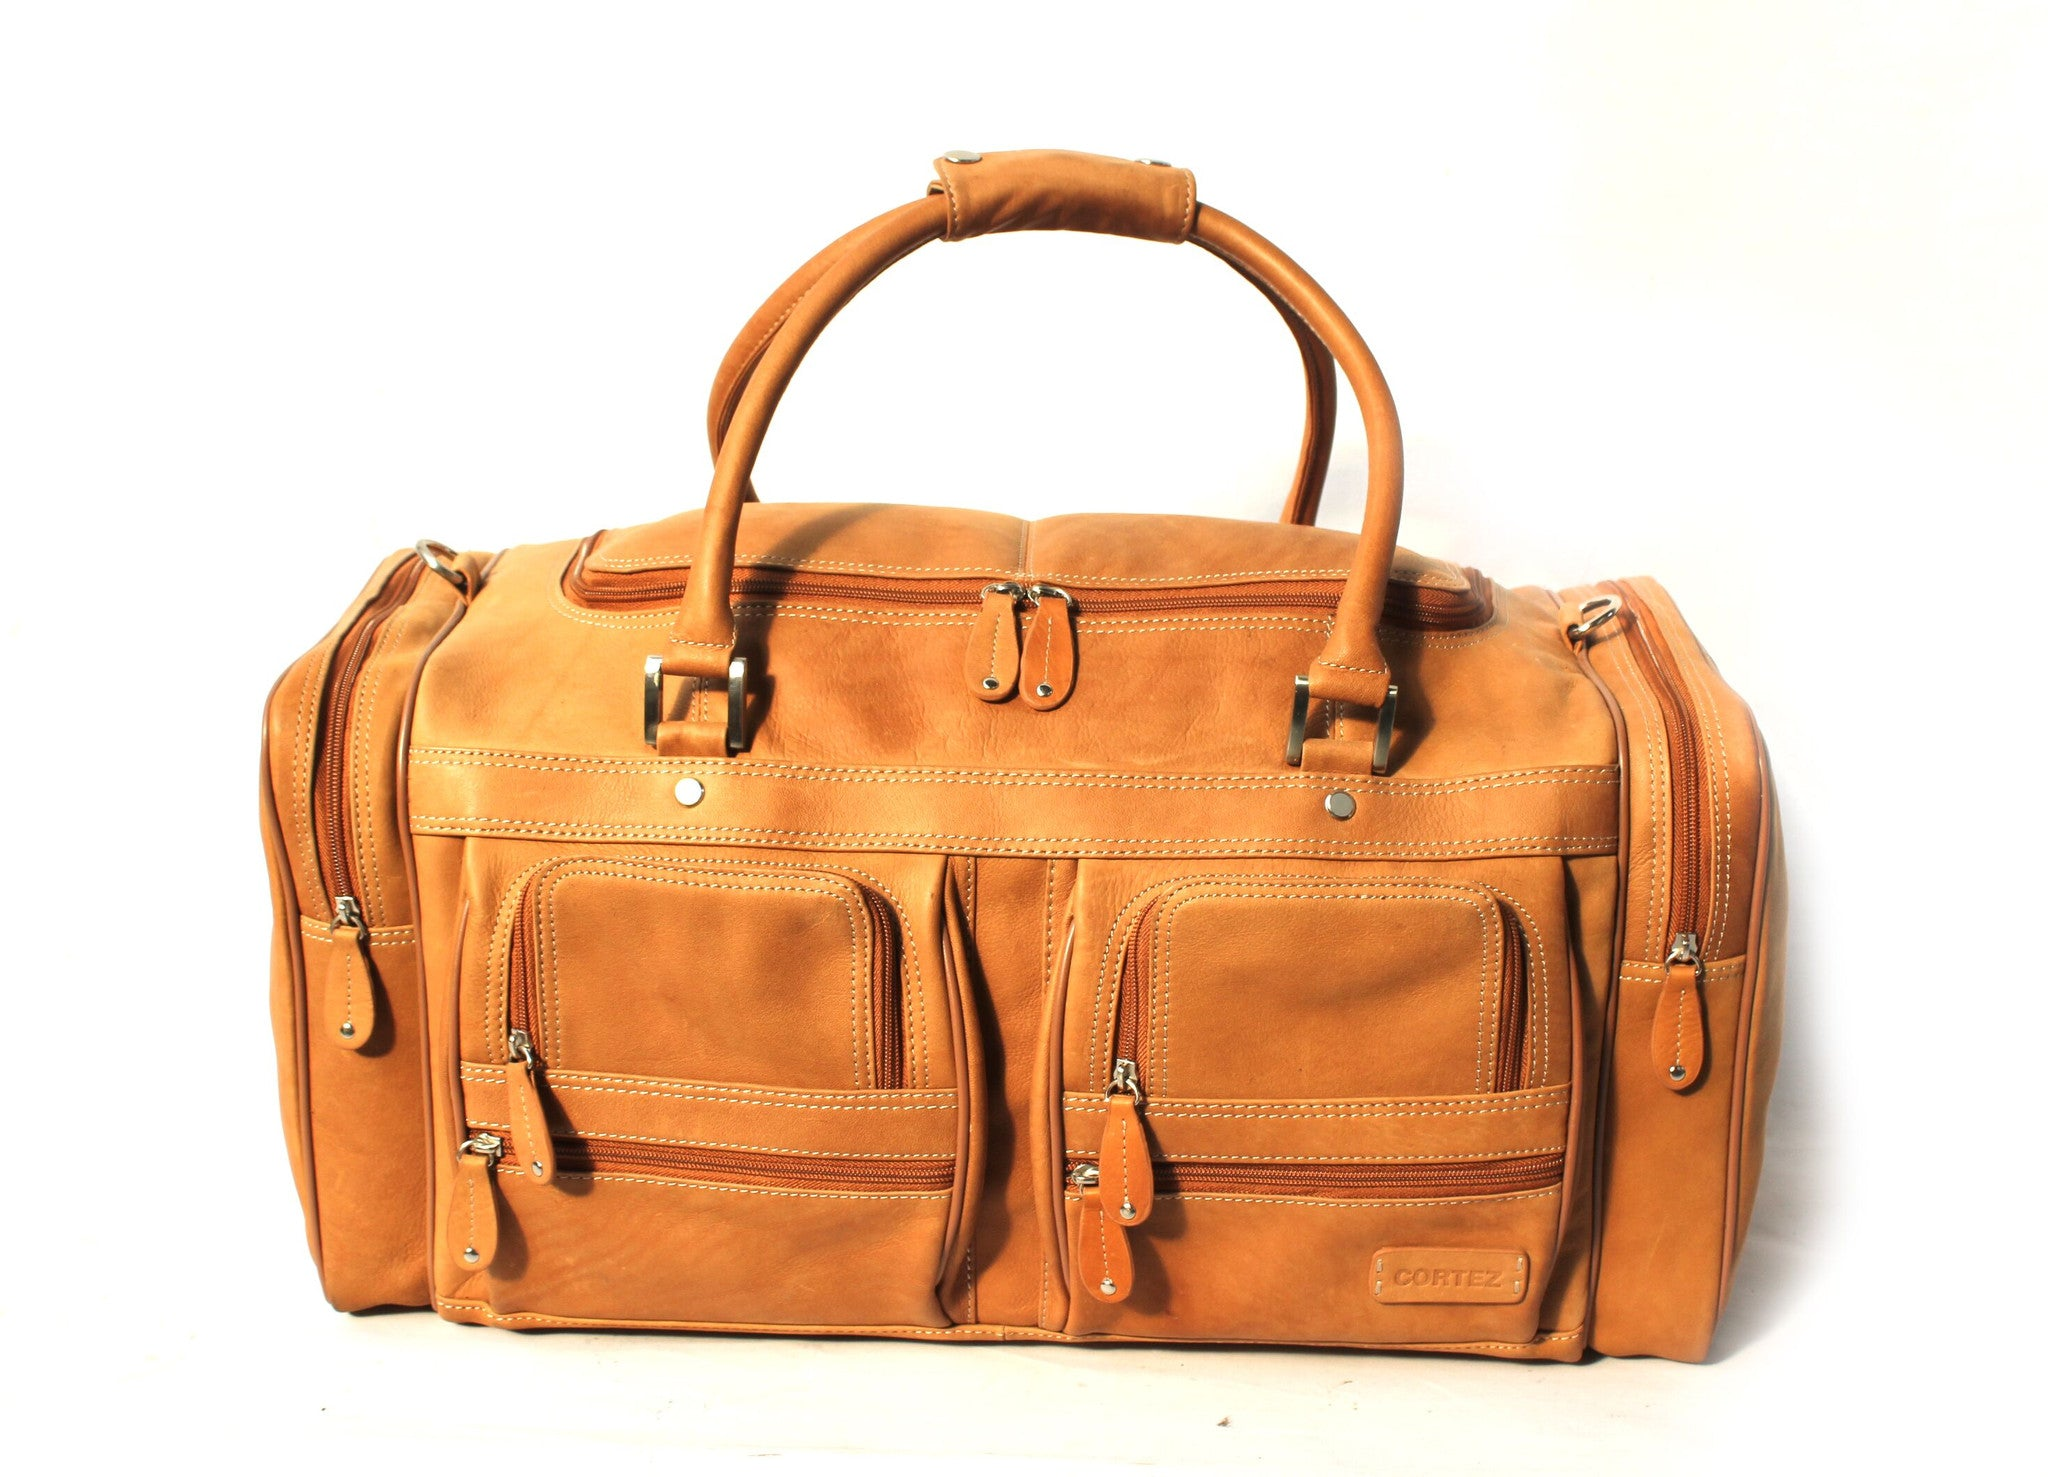 Cortez Colombian Leather Top Opening Travel Bag